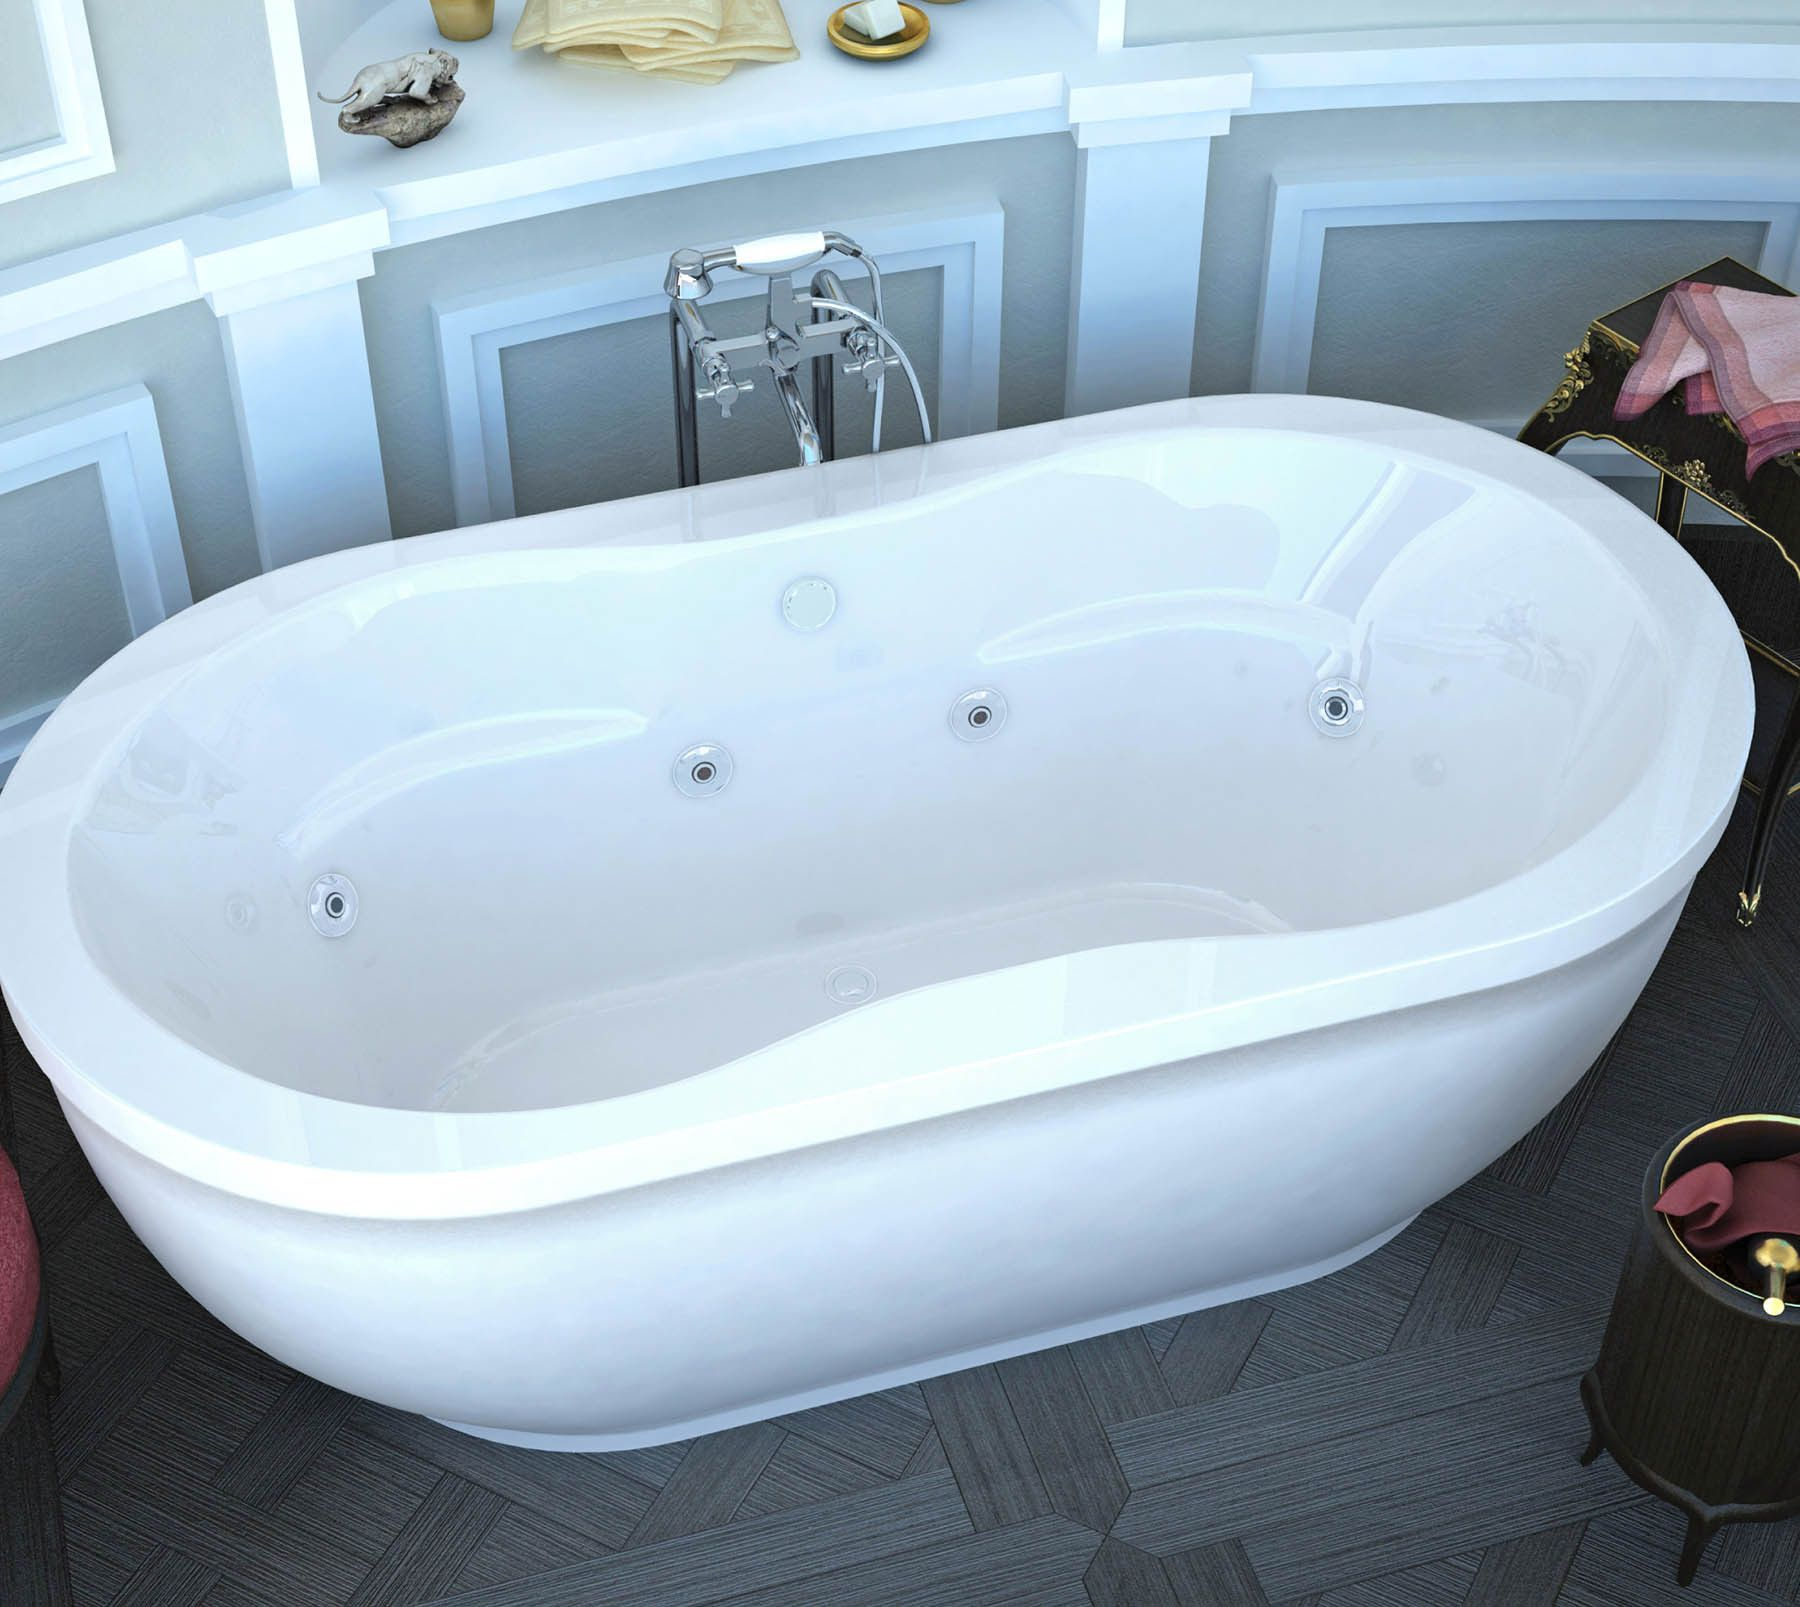 Hugo 58 x 58 Jetted Whirlpool Bath Tub with Built In Steps, Built In ...